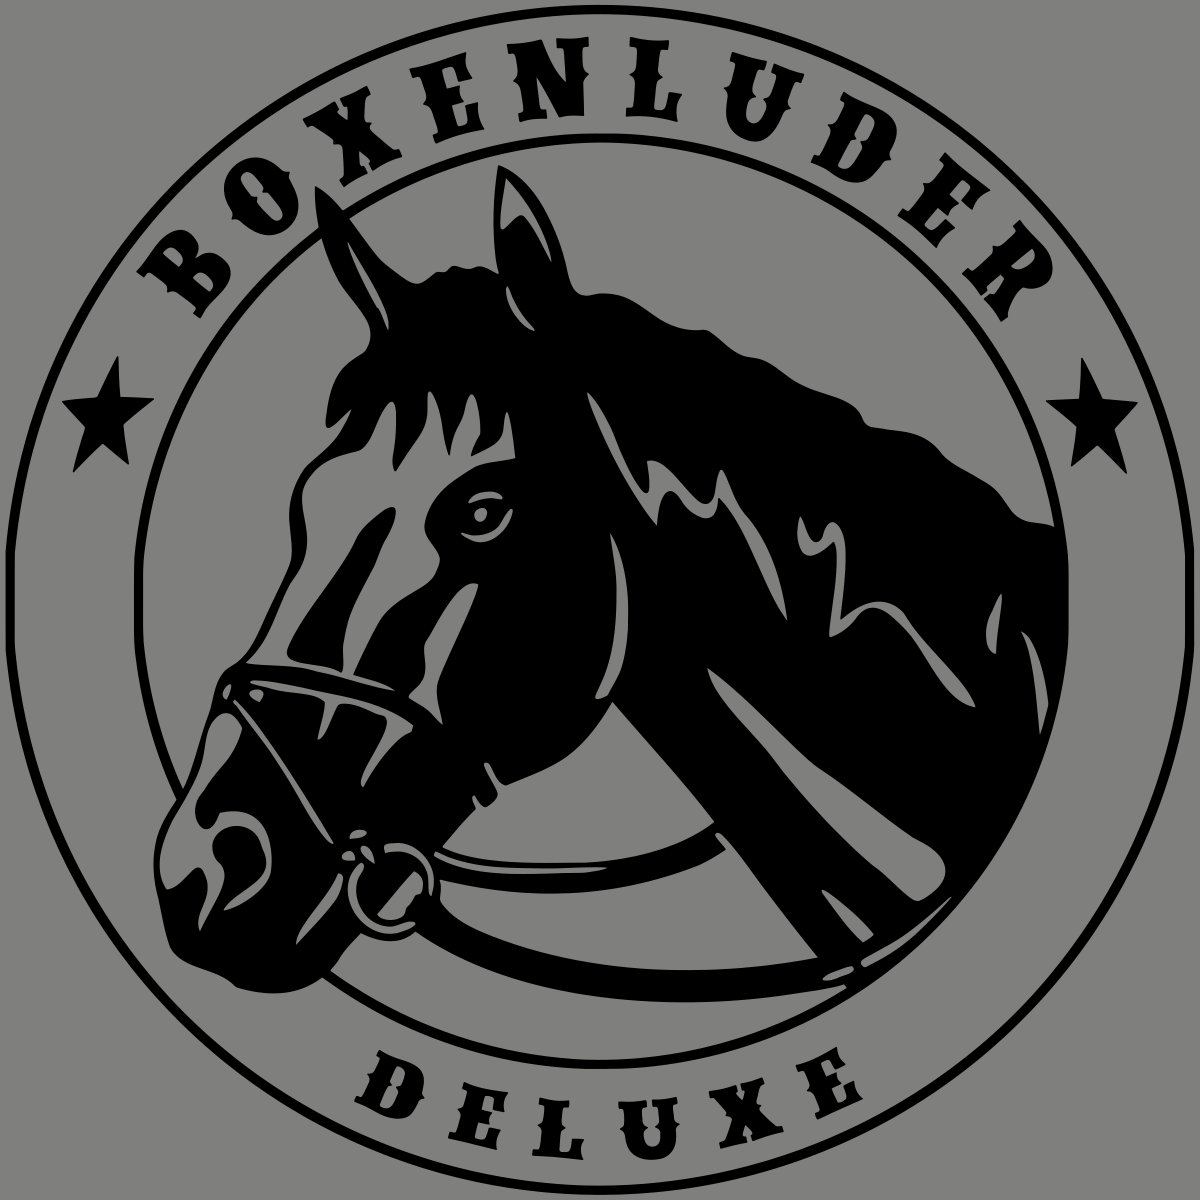 Boxenluder deluxe